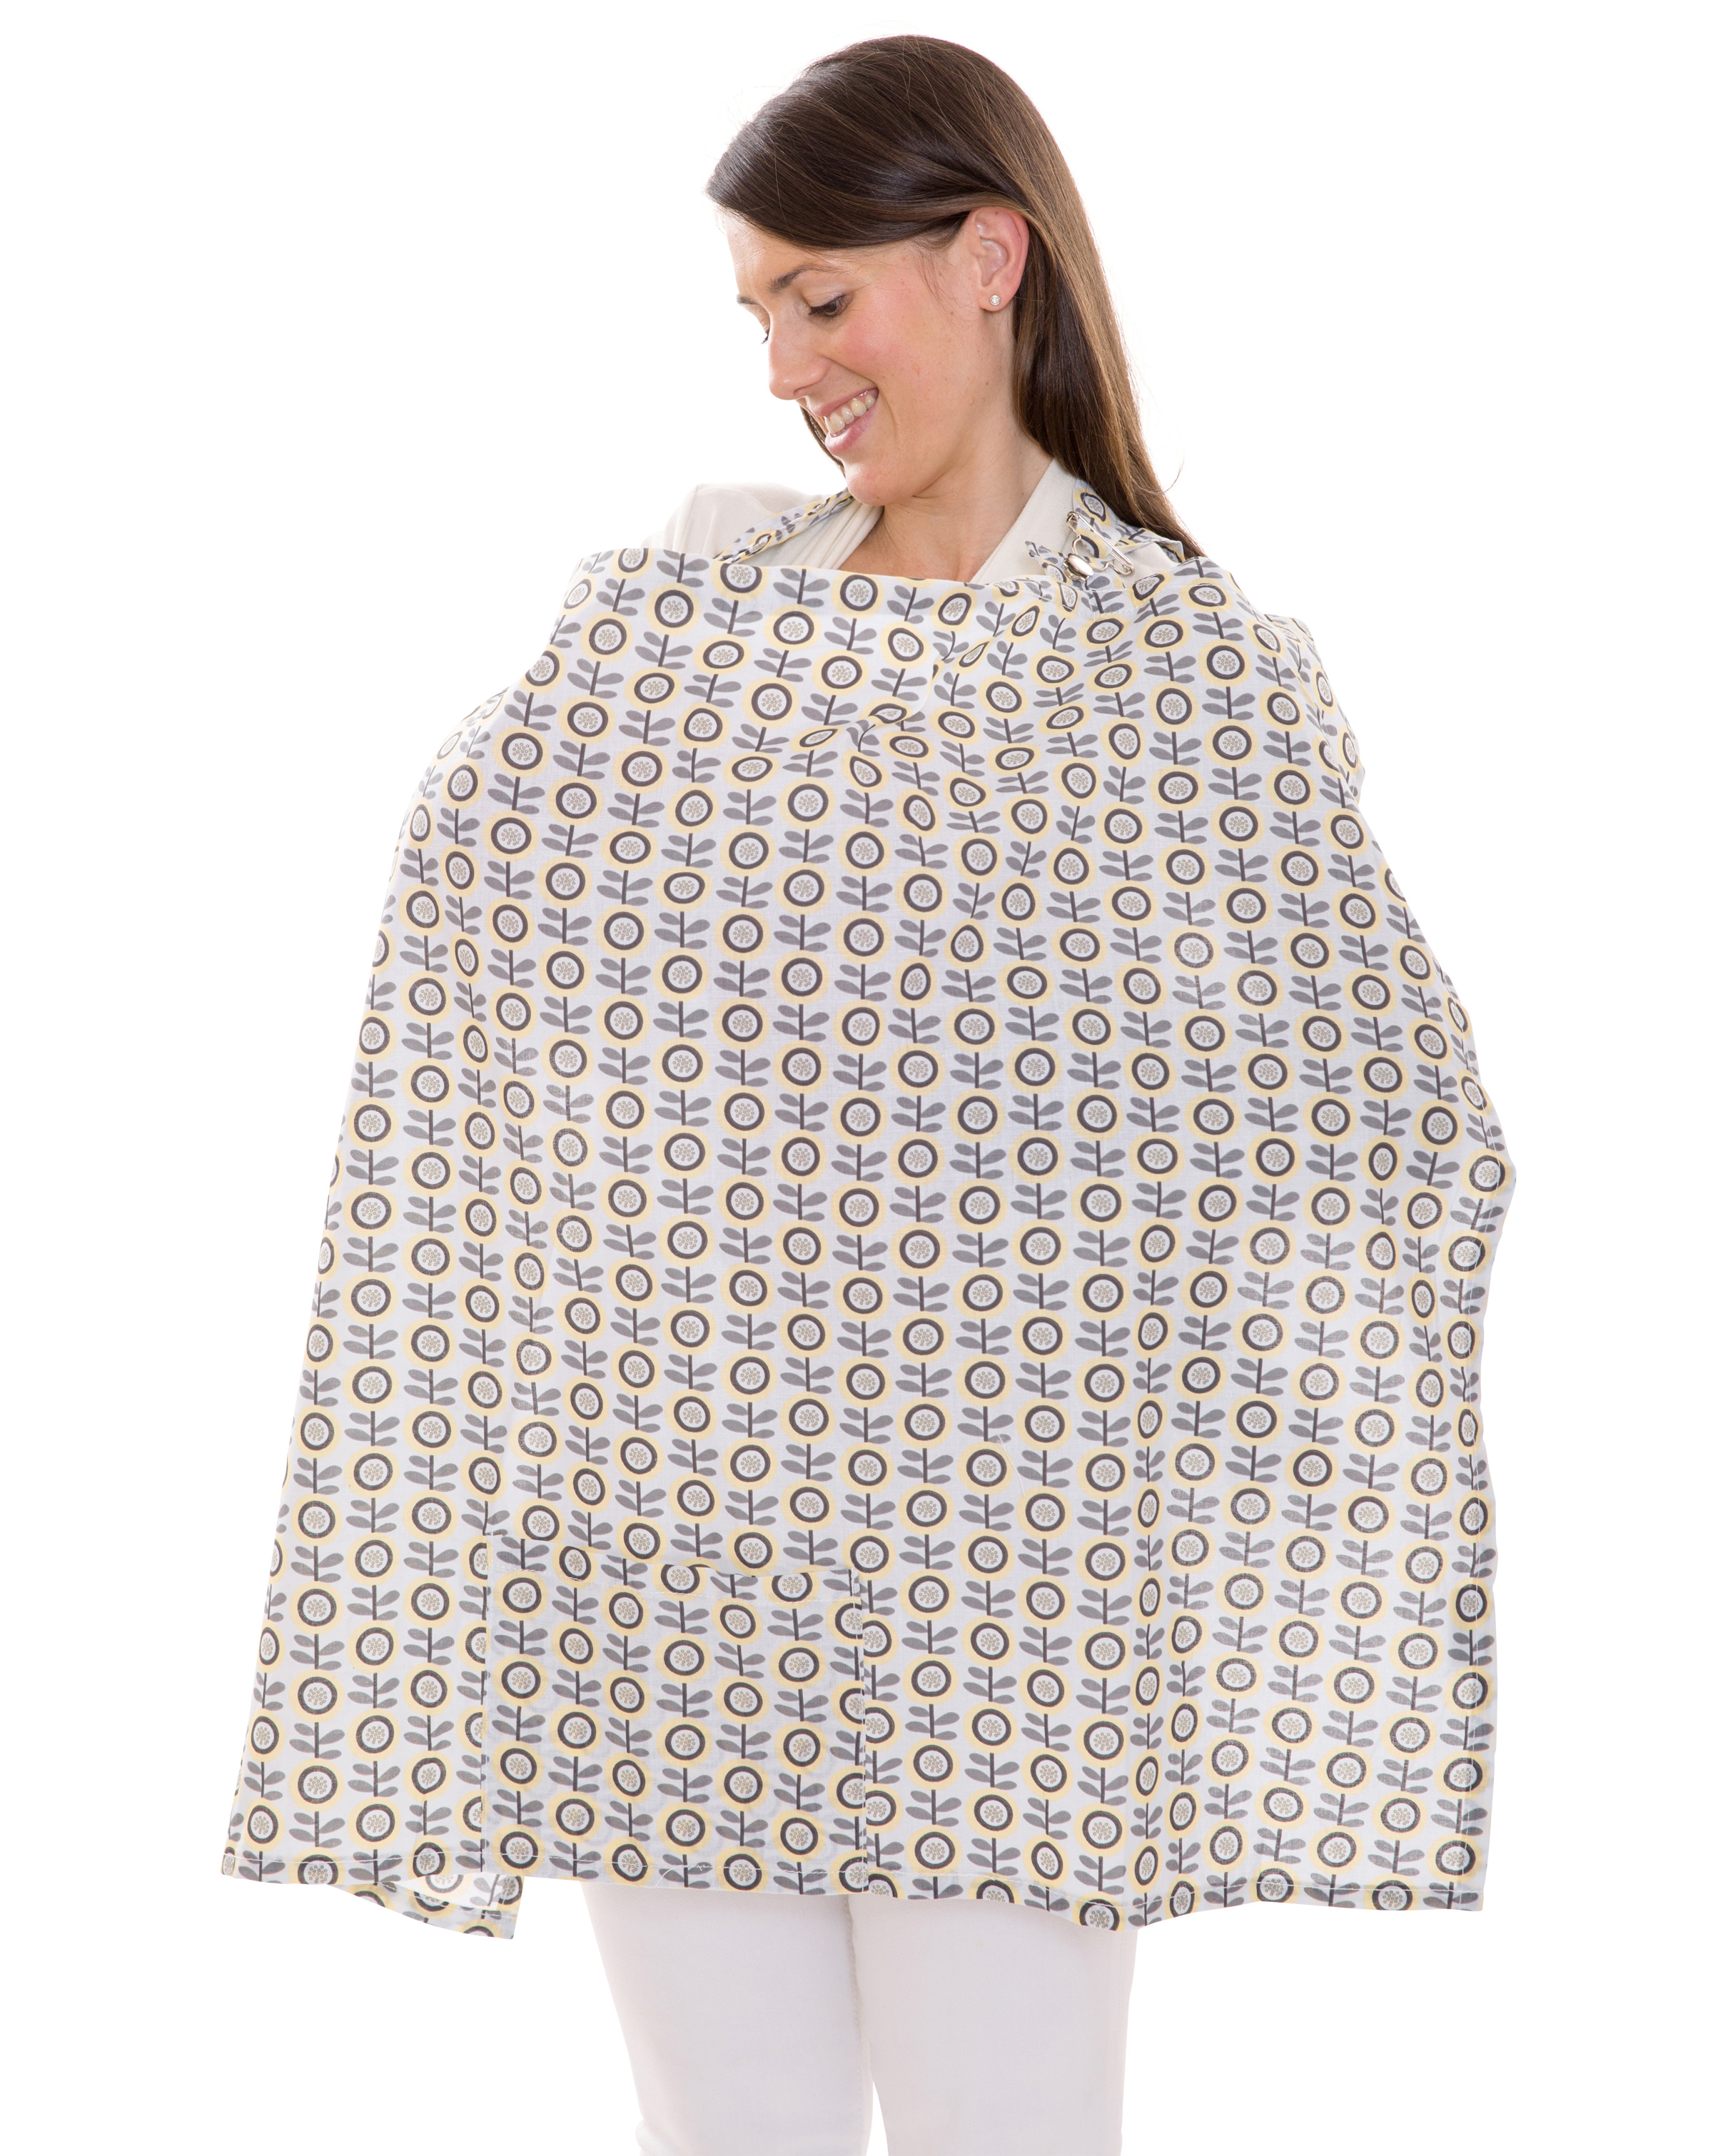 Elegant My Brest Friend Intended For Nursing Cover